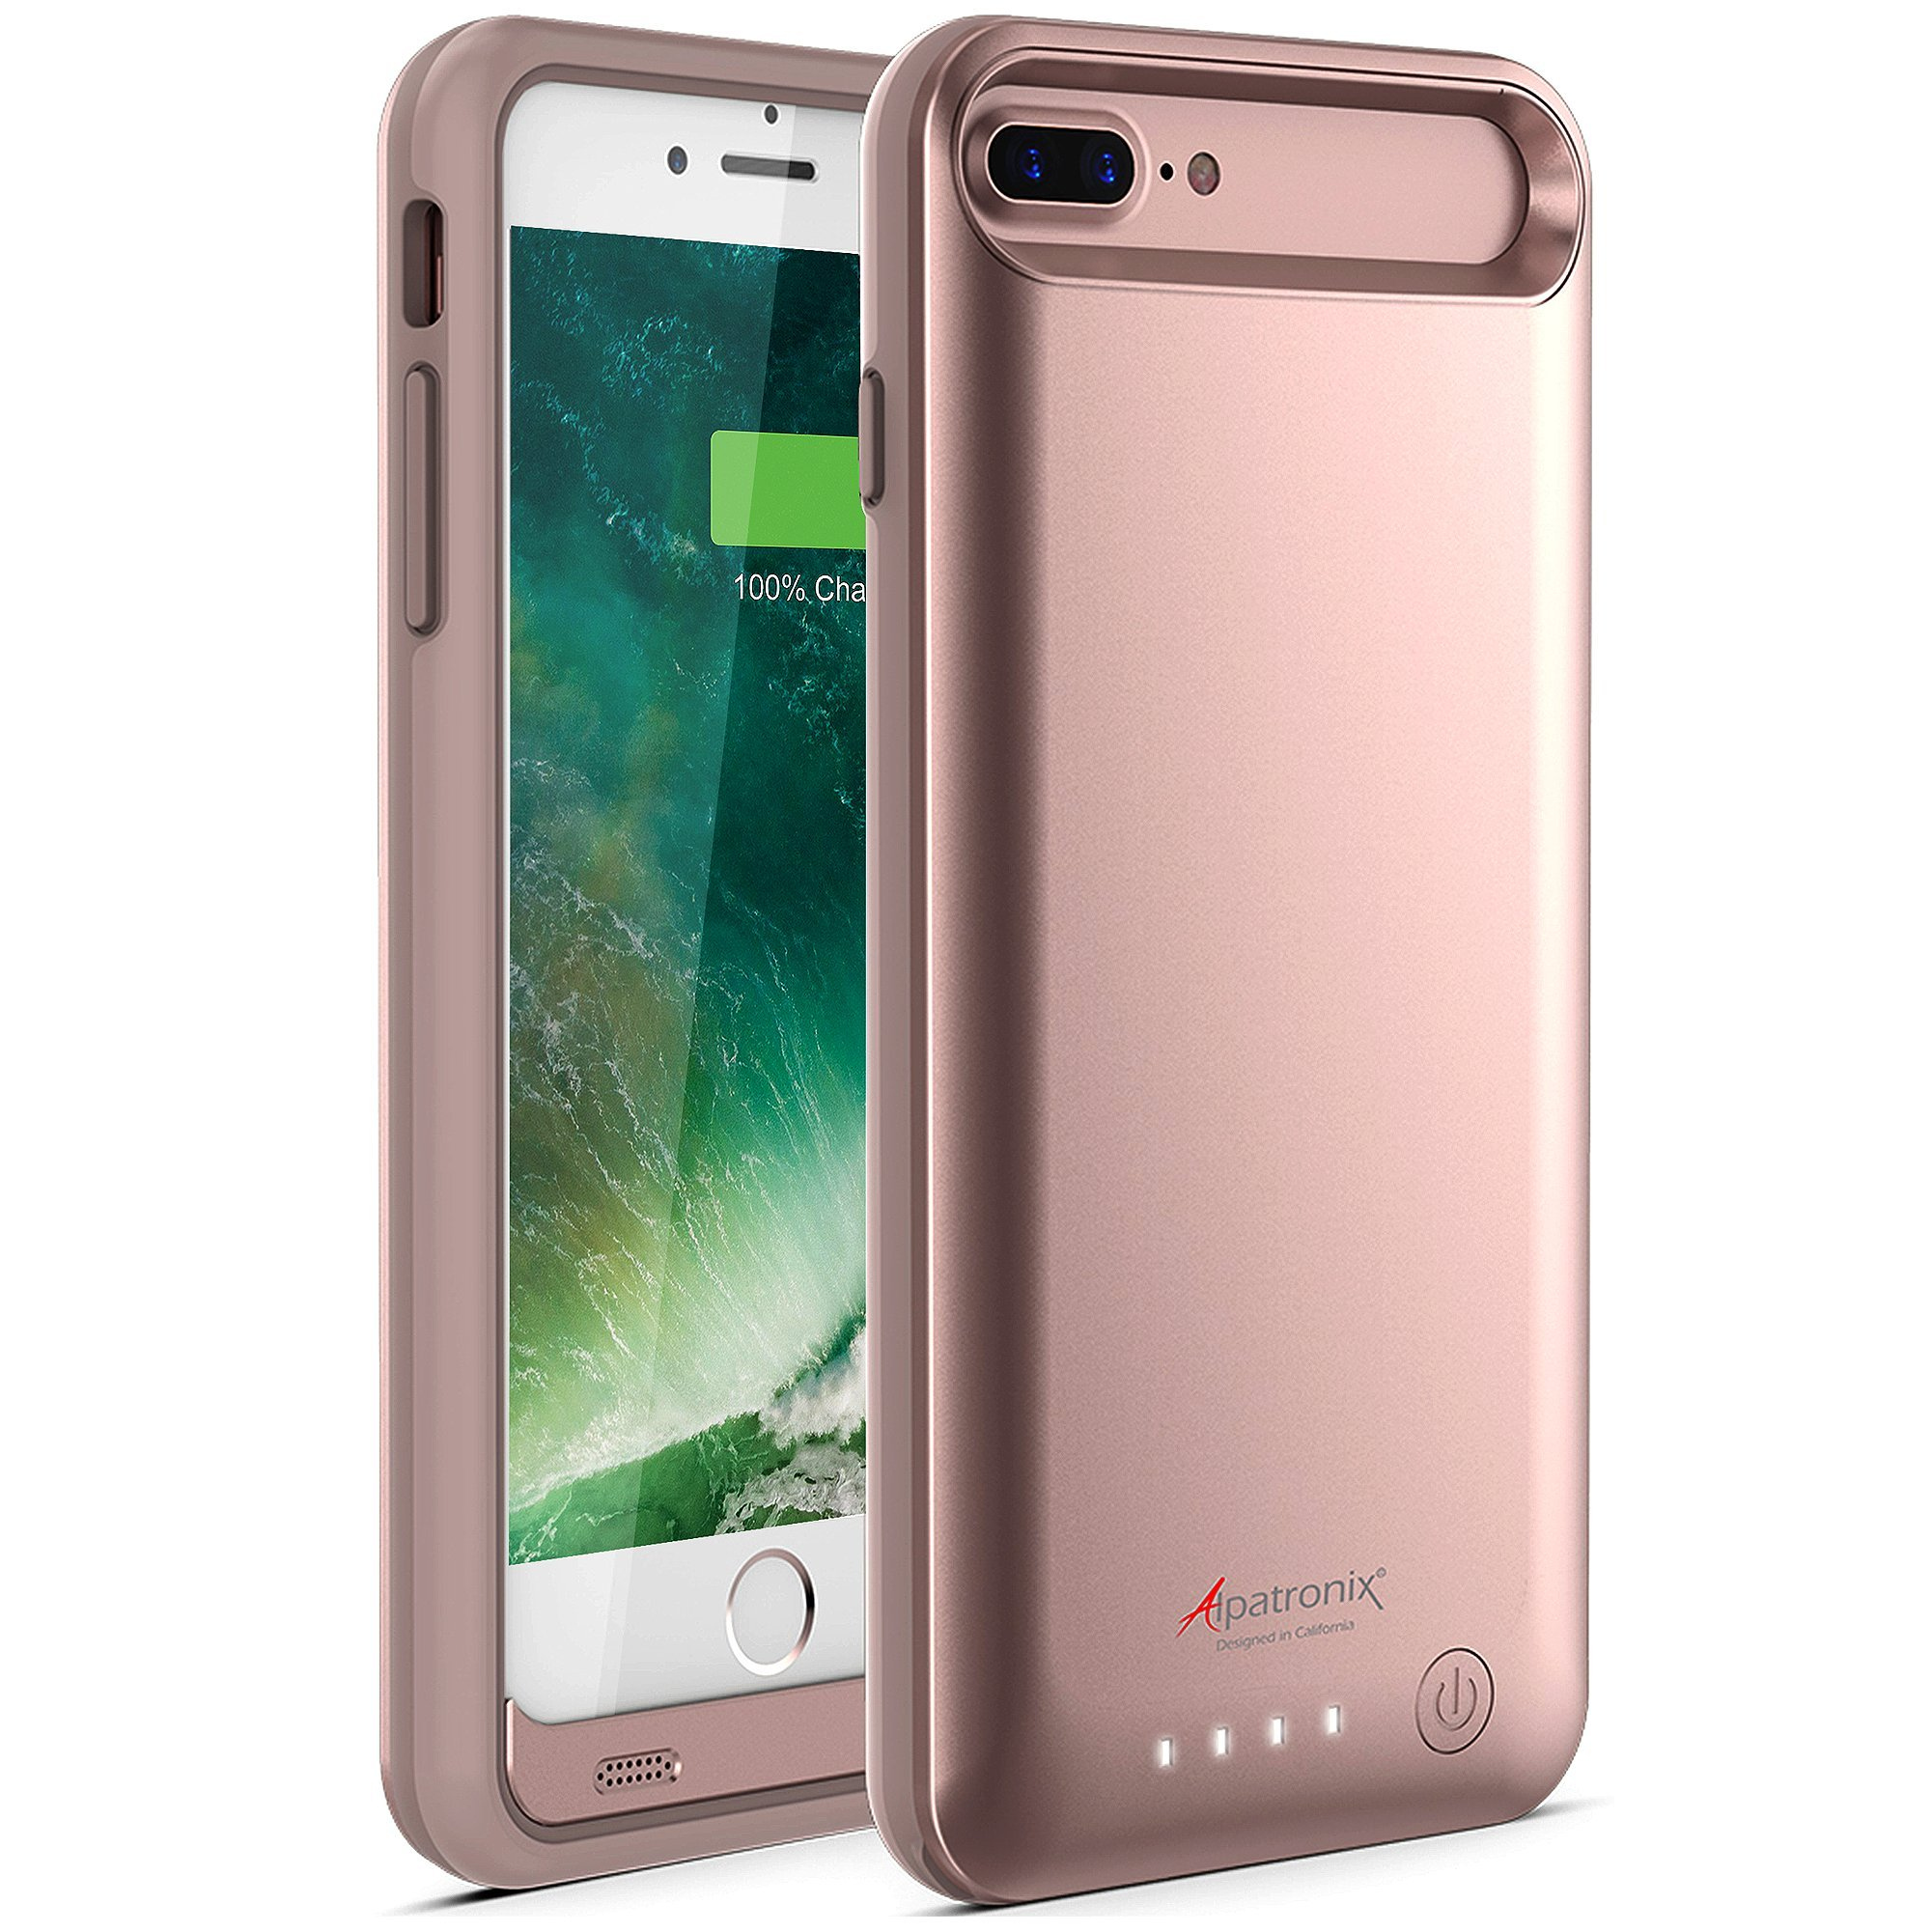 iPhone 8 Plus/iPhone 7 Plus Battery Case, Alpatronix BX170plus (5.5-inch) 4200mAh Rechargeable Protective Portable Power Charging Case for iPhone 7+ 8+ [Apple Certified Chip, iOS 11+] - Rose Gold